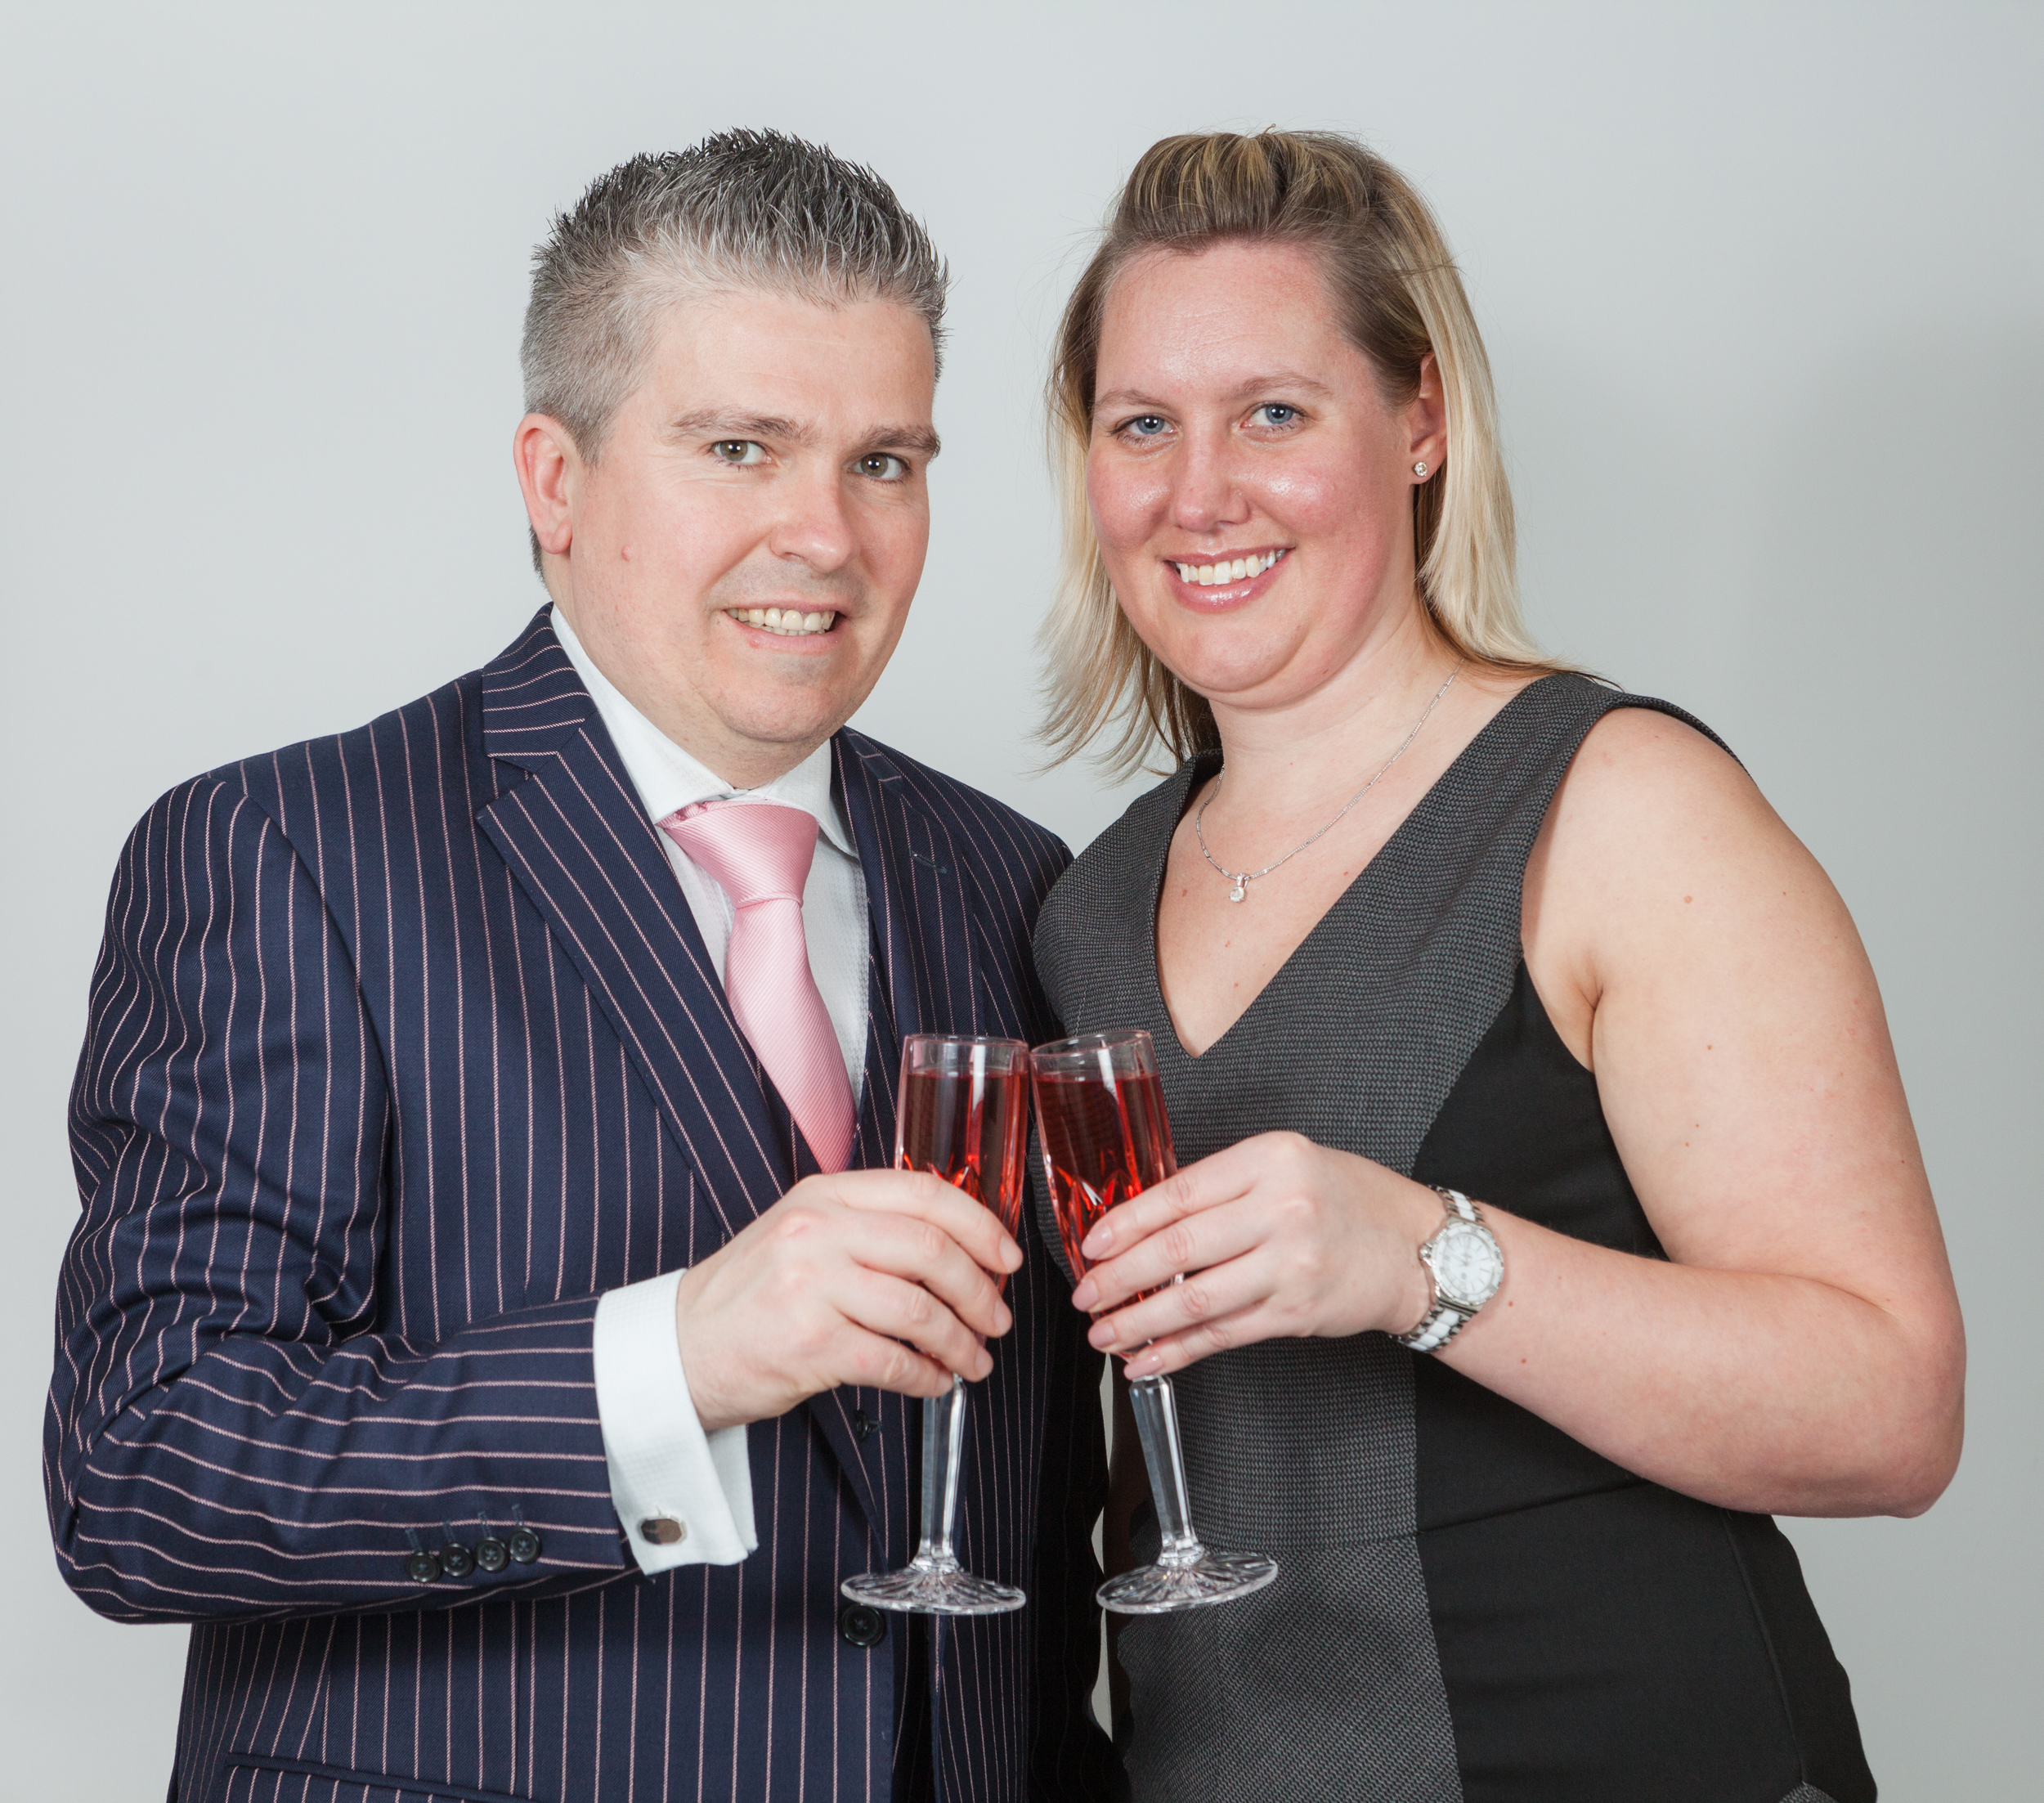 Jo and Dave - Suits - Champagne glasses _SimbocLtd_6987.jpg